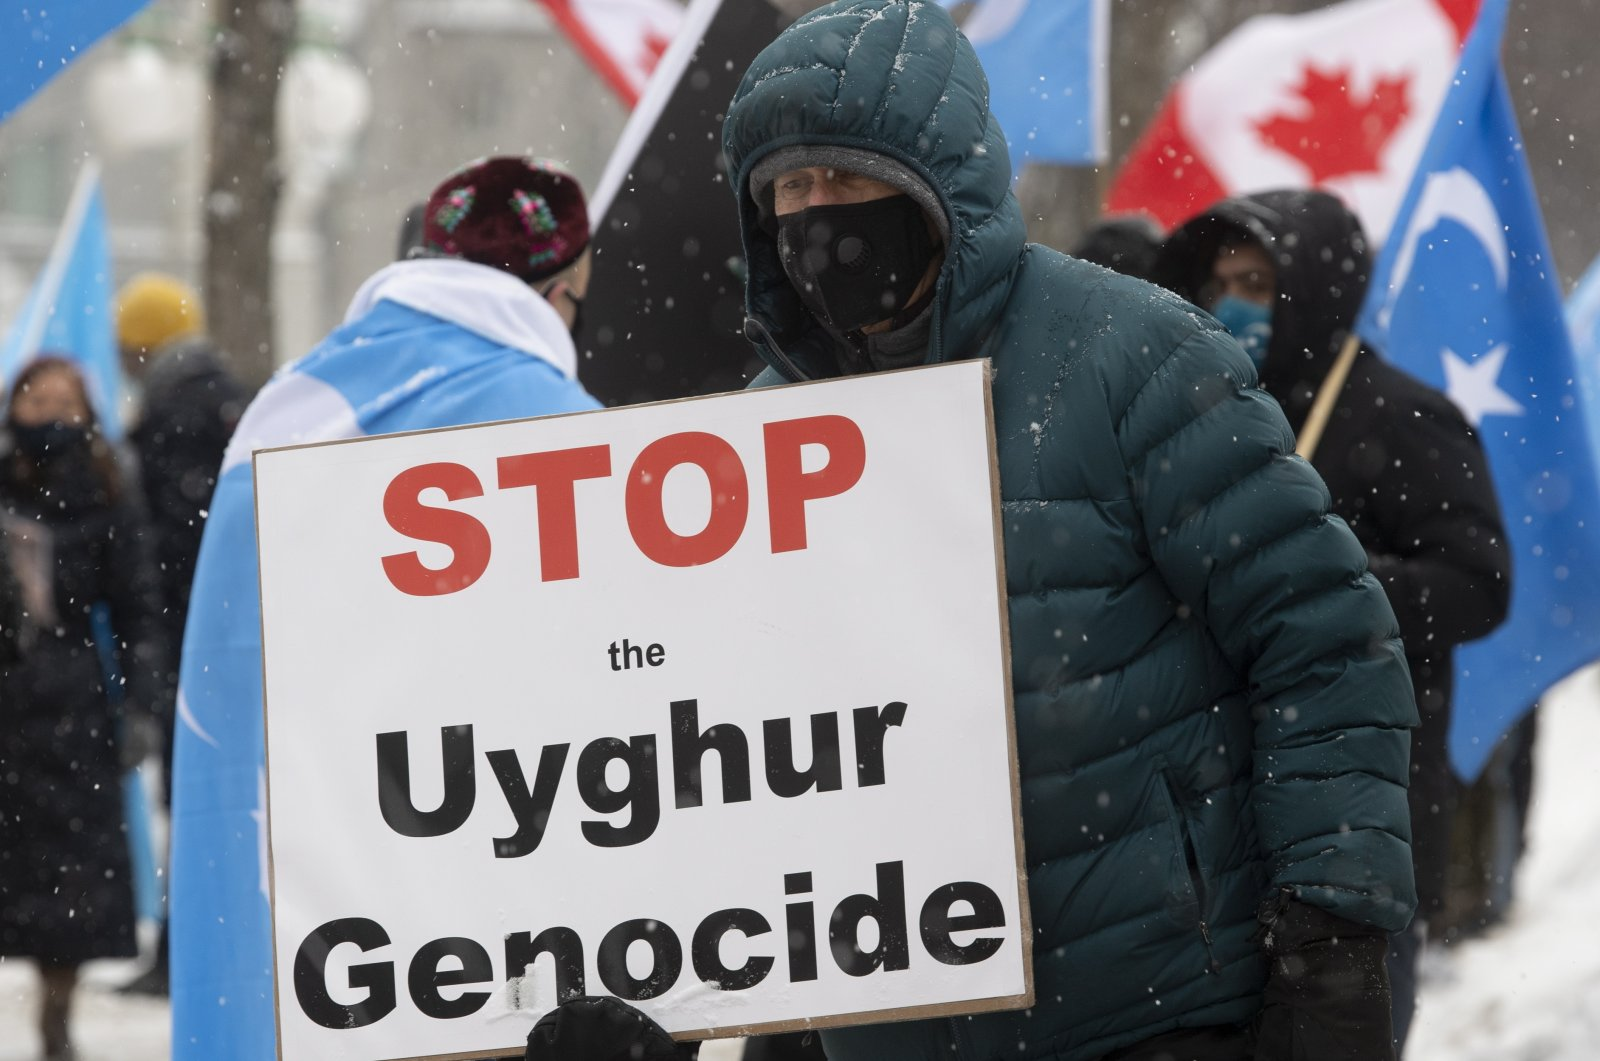 Protesters gather outside the Parliament buildings in Ottawa, Ontario Monday, Feb. 22, 2021. (AP)